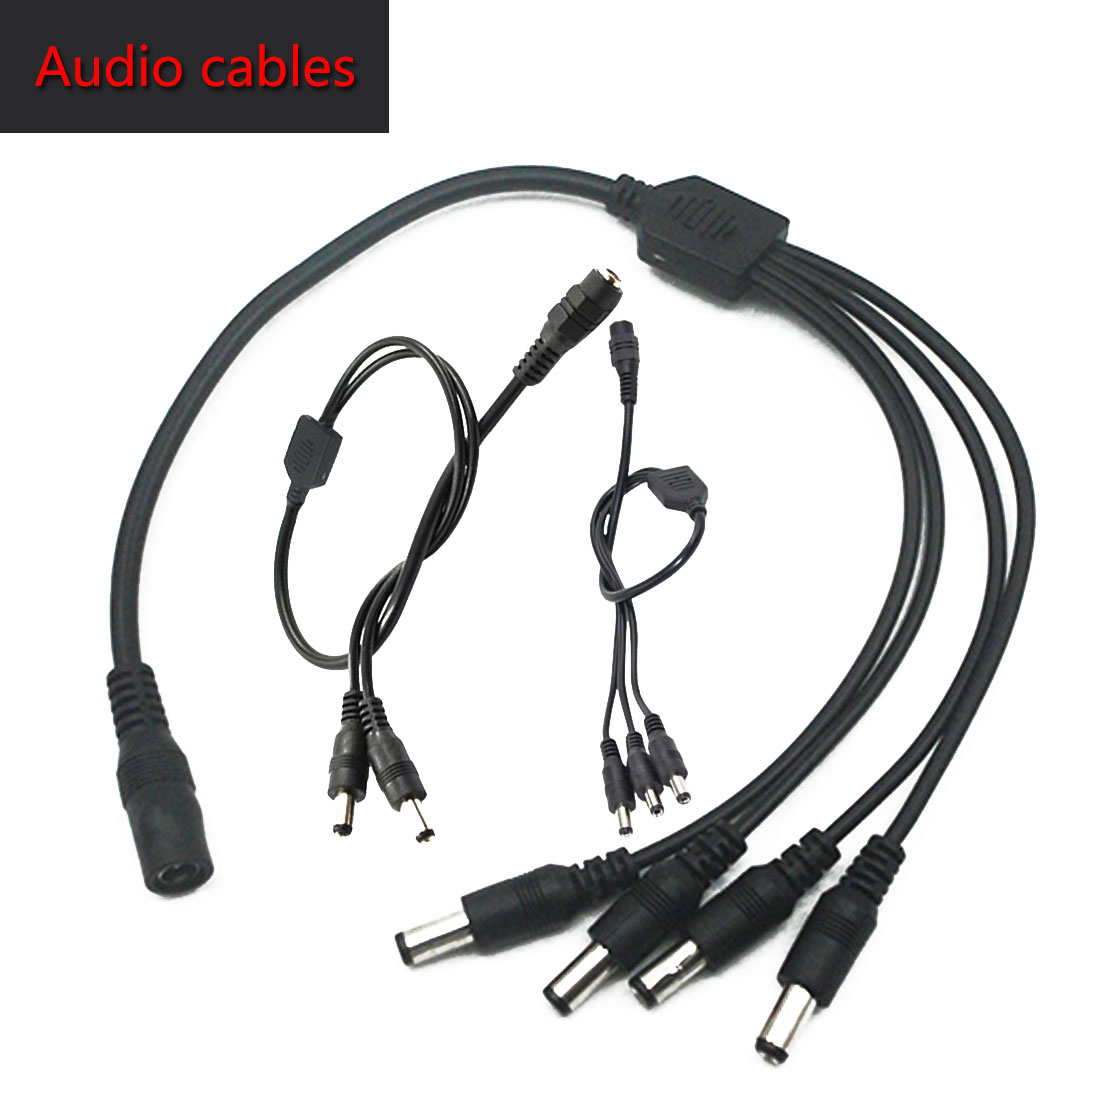 1 DC Female To 2/3/4 Male Plug Power Cord Adapter Connector Cable Splitter for LED Strip ...